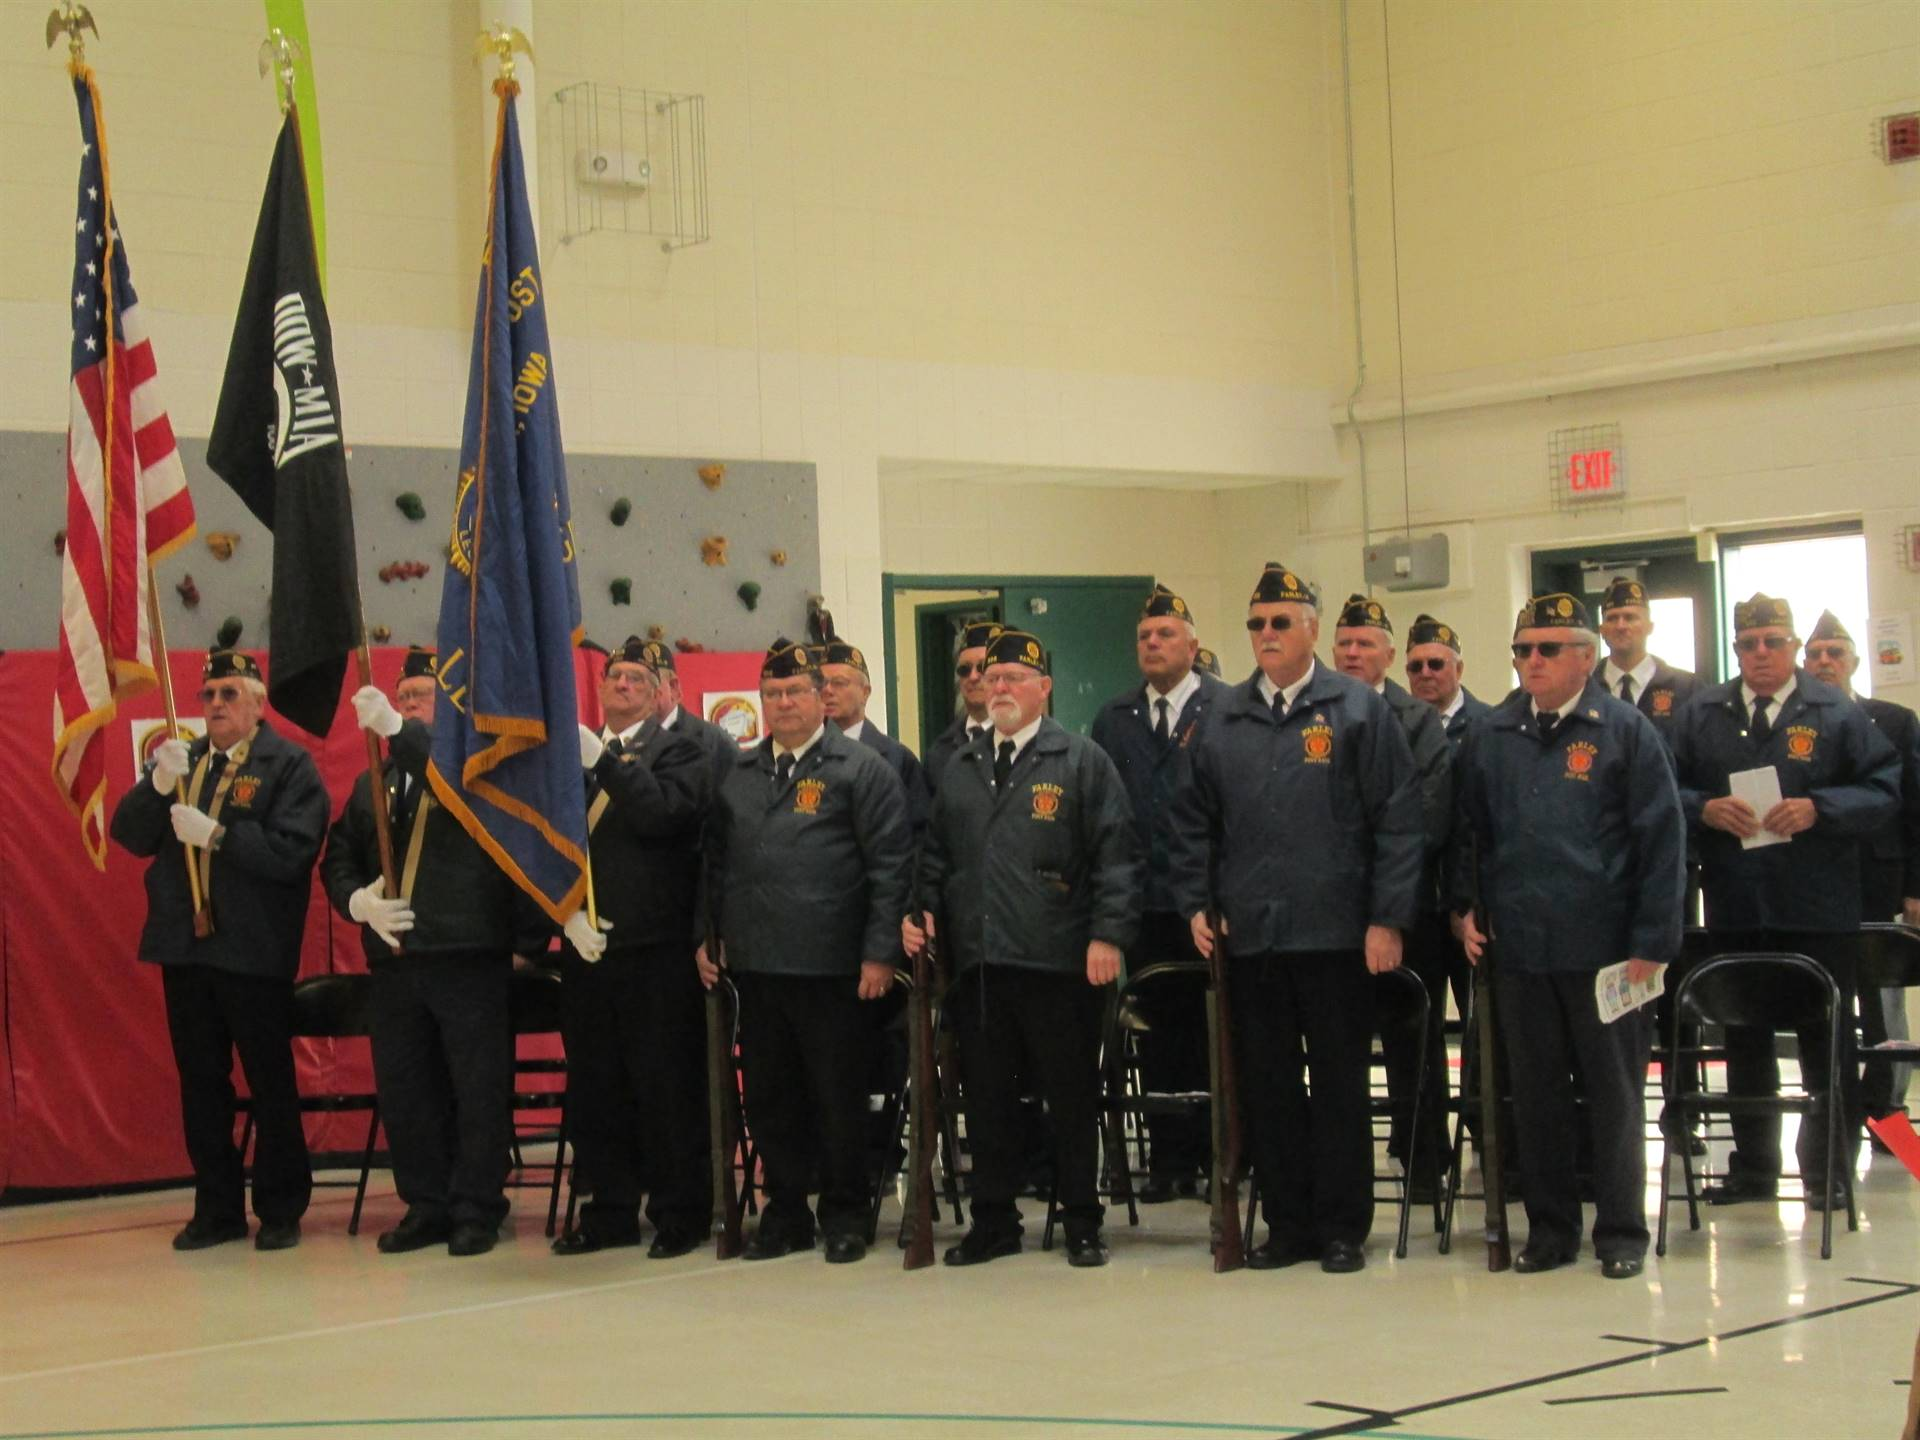 Farley Elementary veterams visit the school for Veterans Day